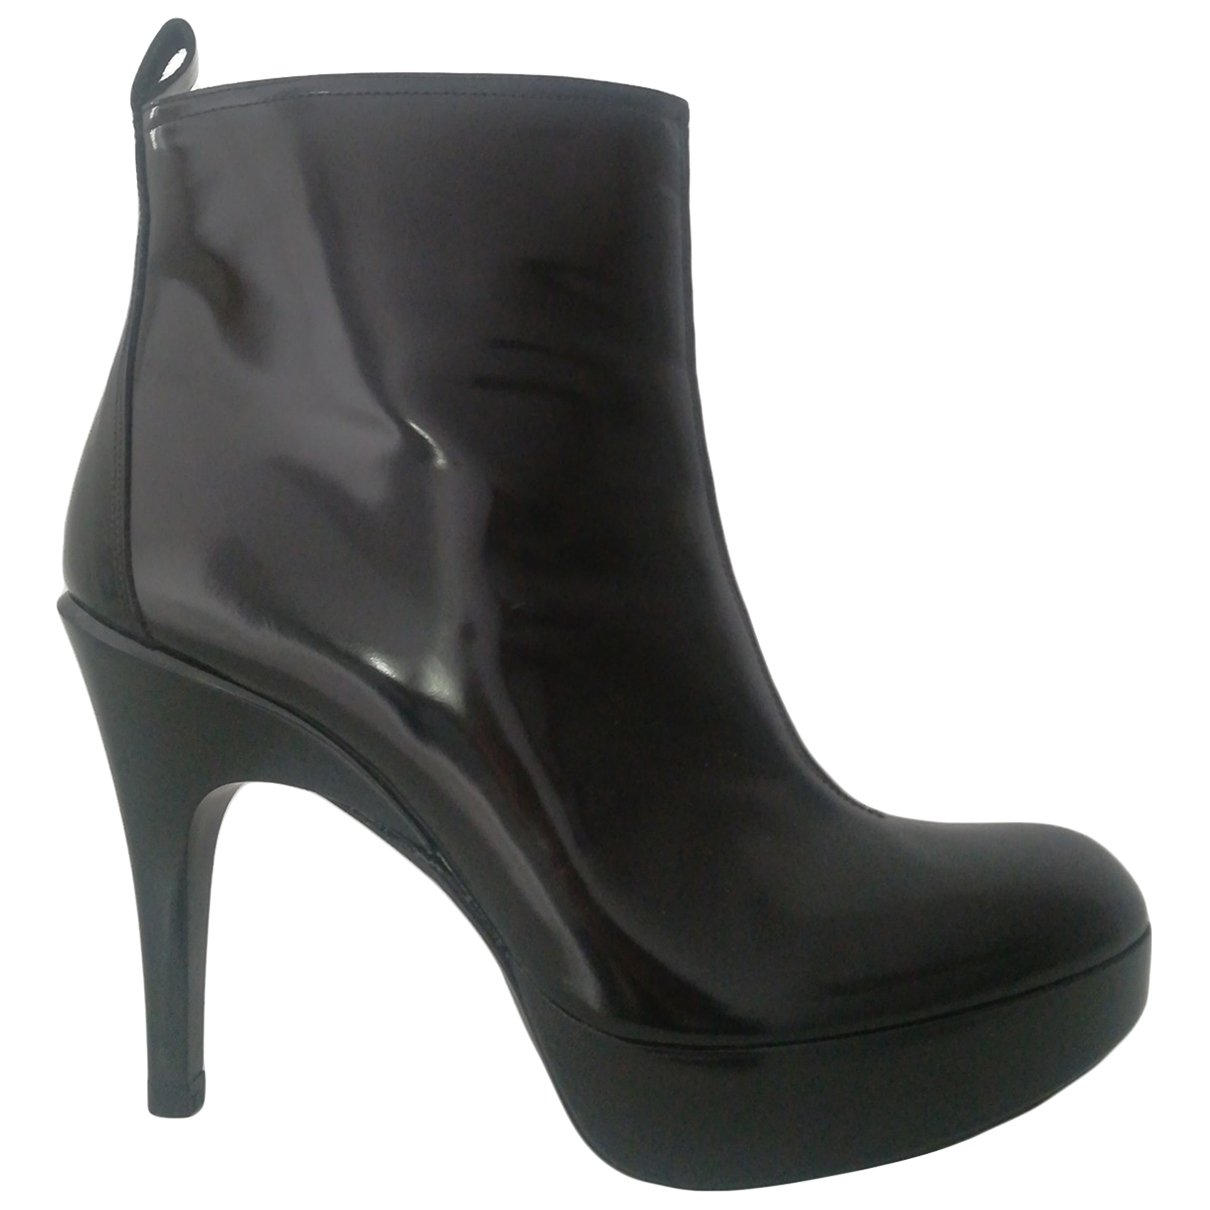 Pedro Garcia \N Black Patent leather Ankle boots for Women 38 EU